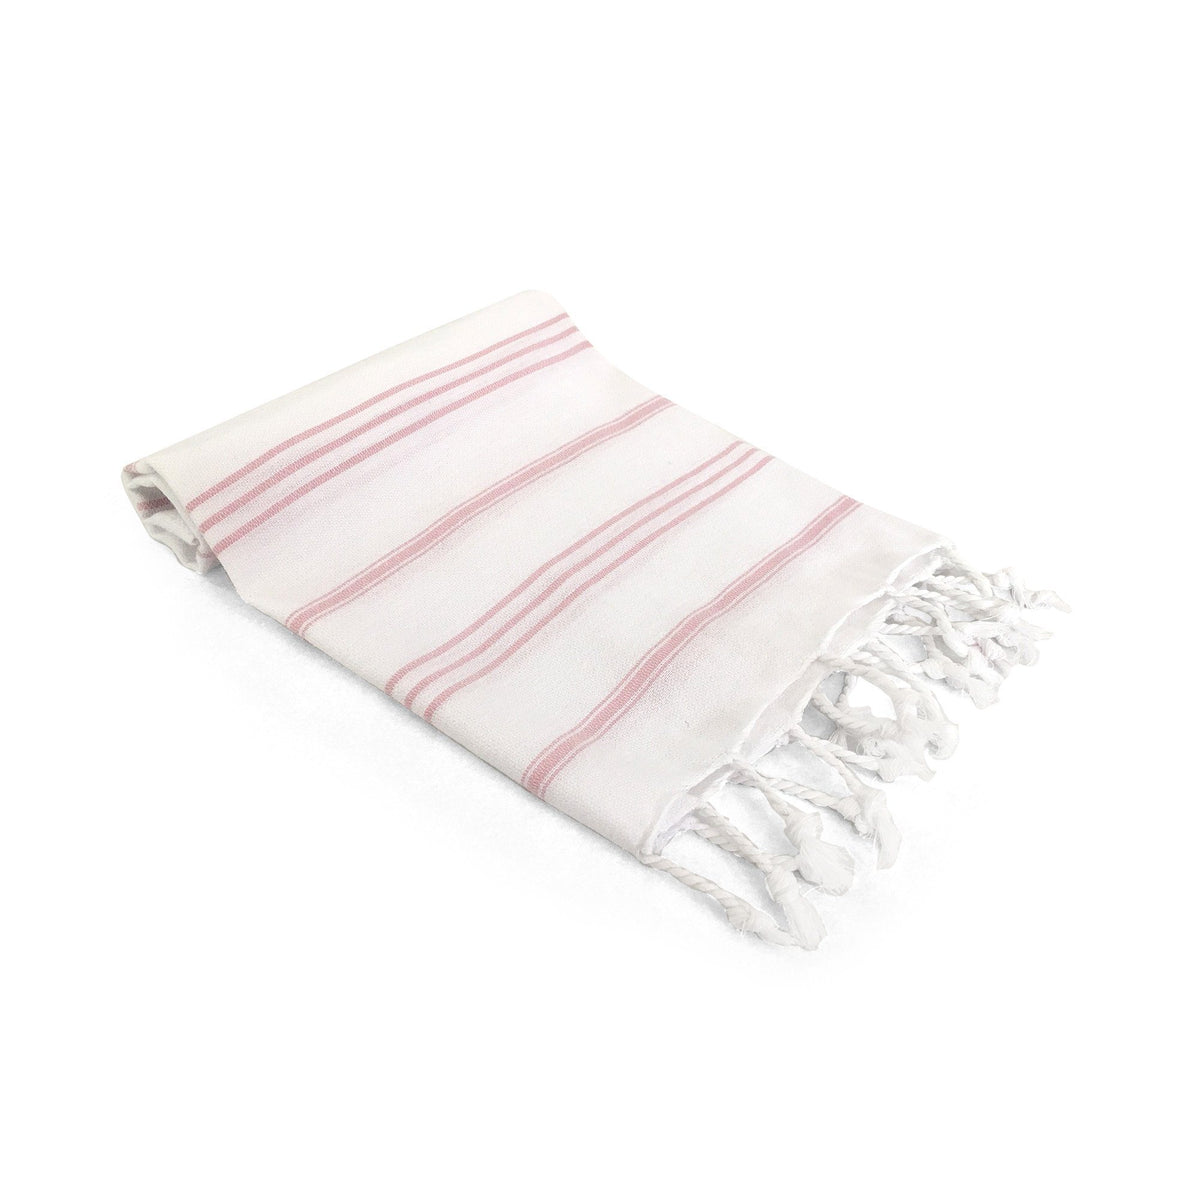 Datca Turkish Hand / Kitchen Towel